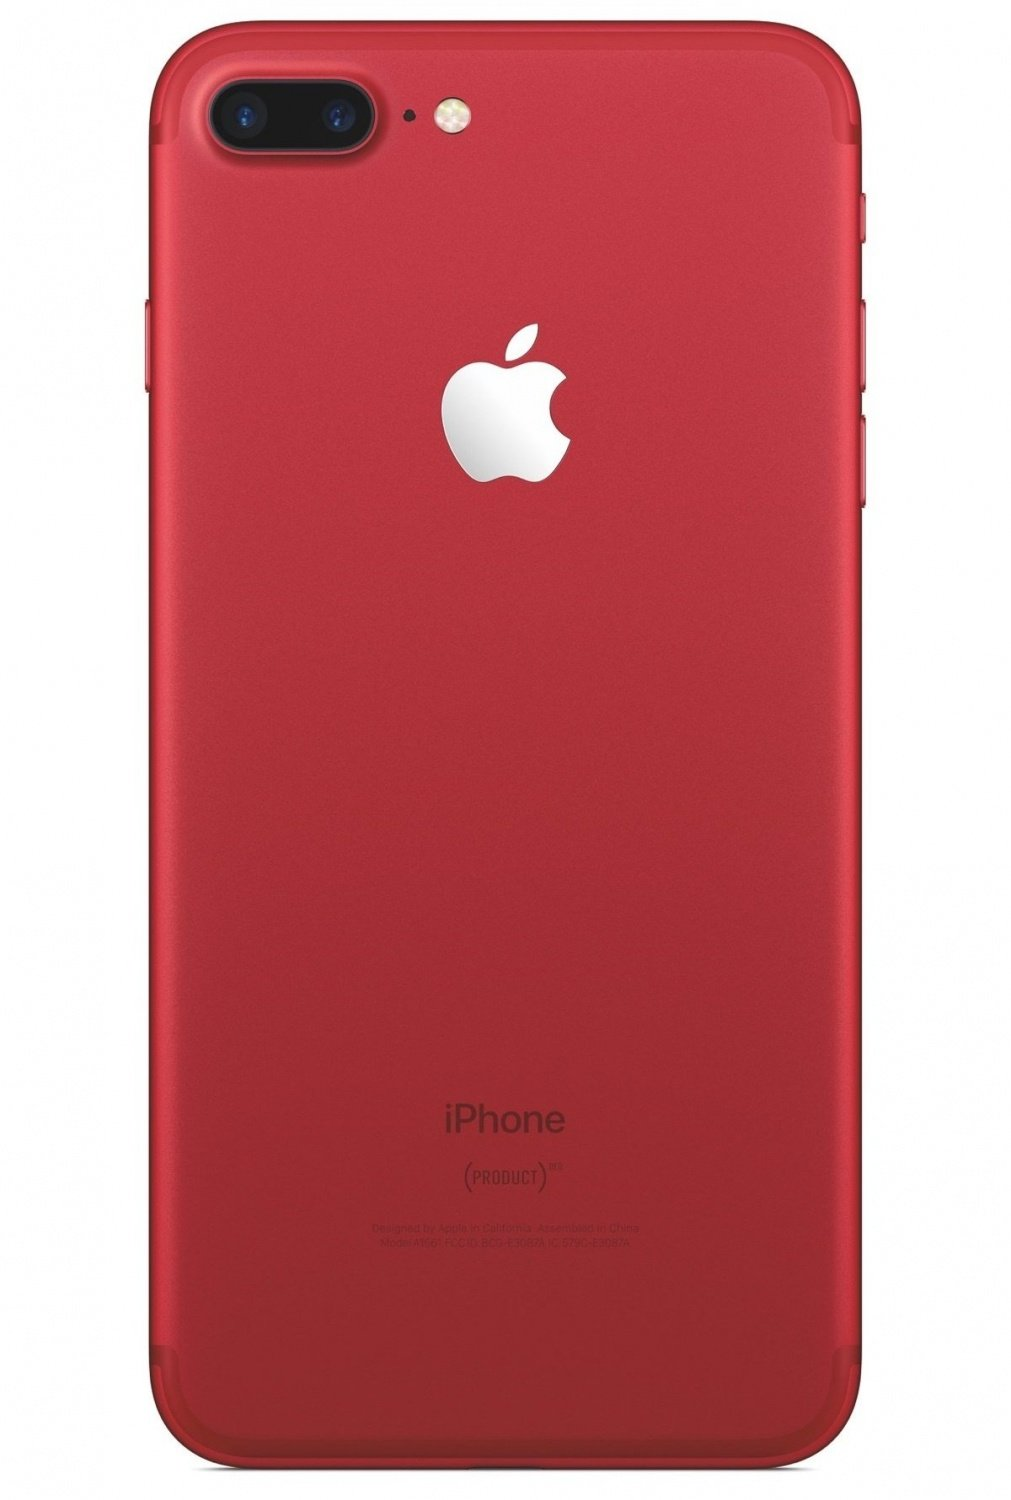 Apple iPhone 7 Plus 128 Gb (PRODUCT)RED (MPQW2)